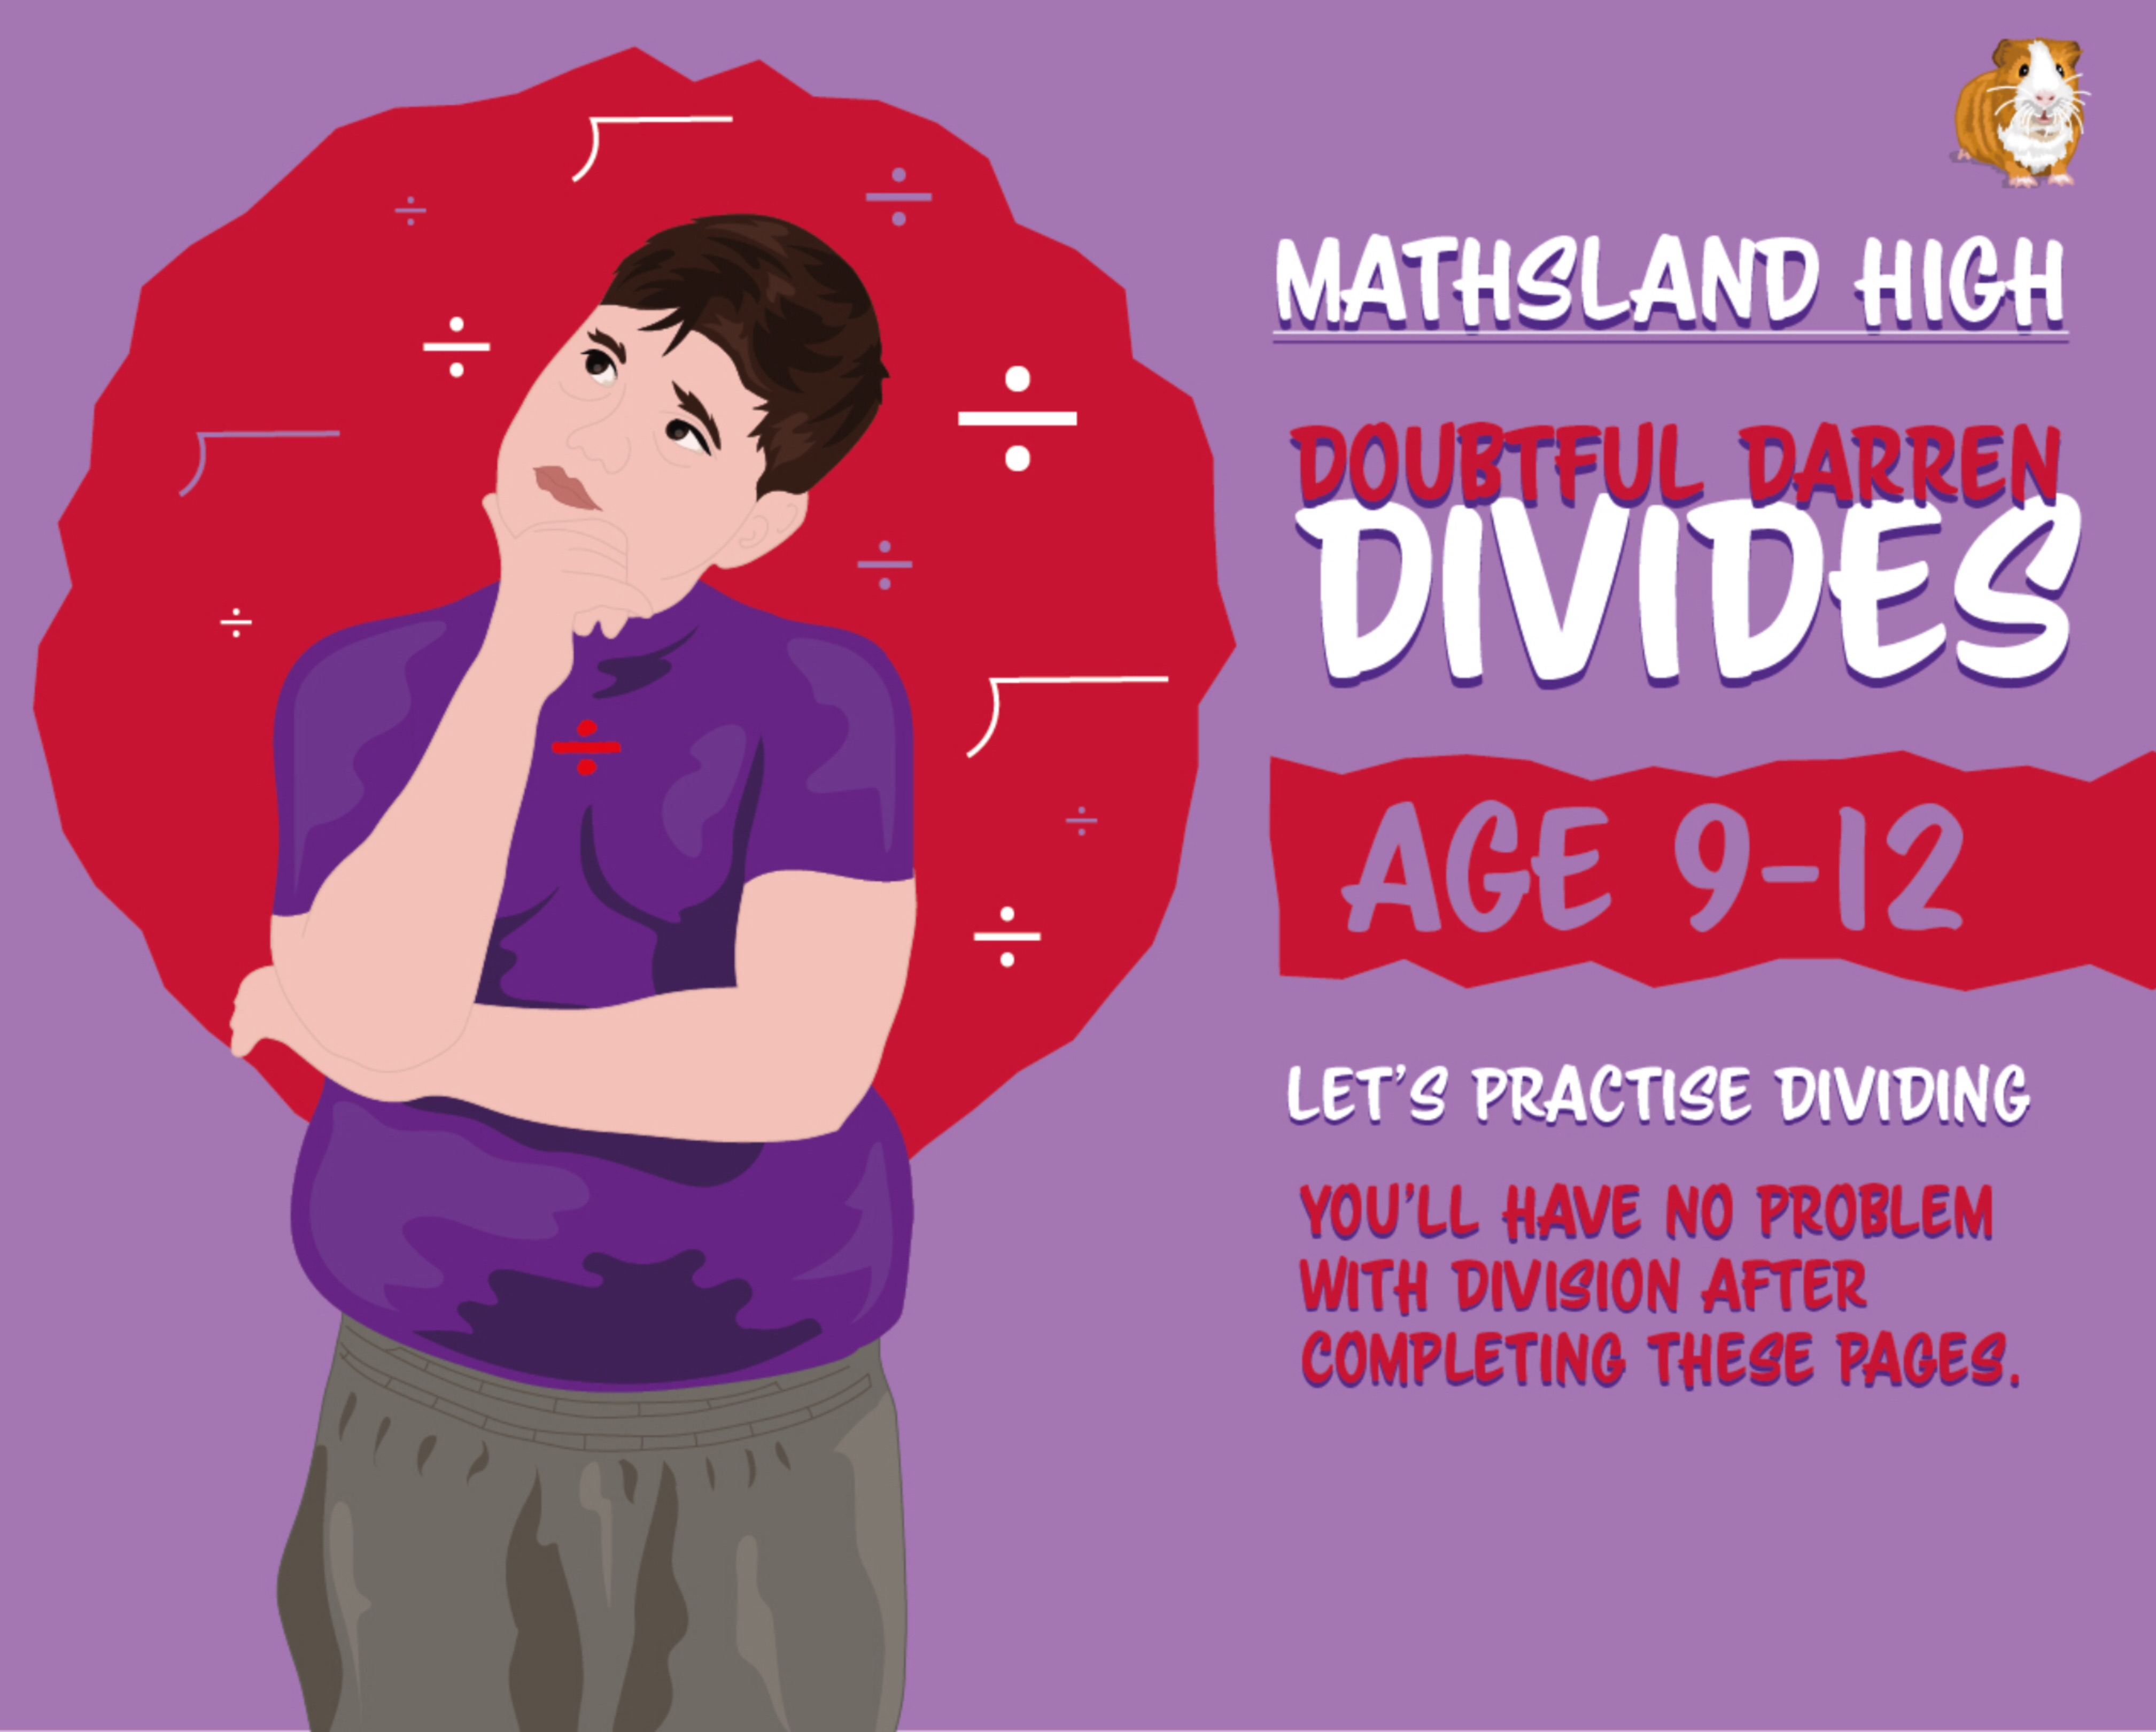 Division & Long Division Practice Questions - Age 9-12